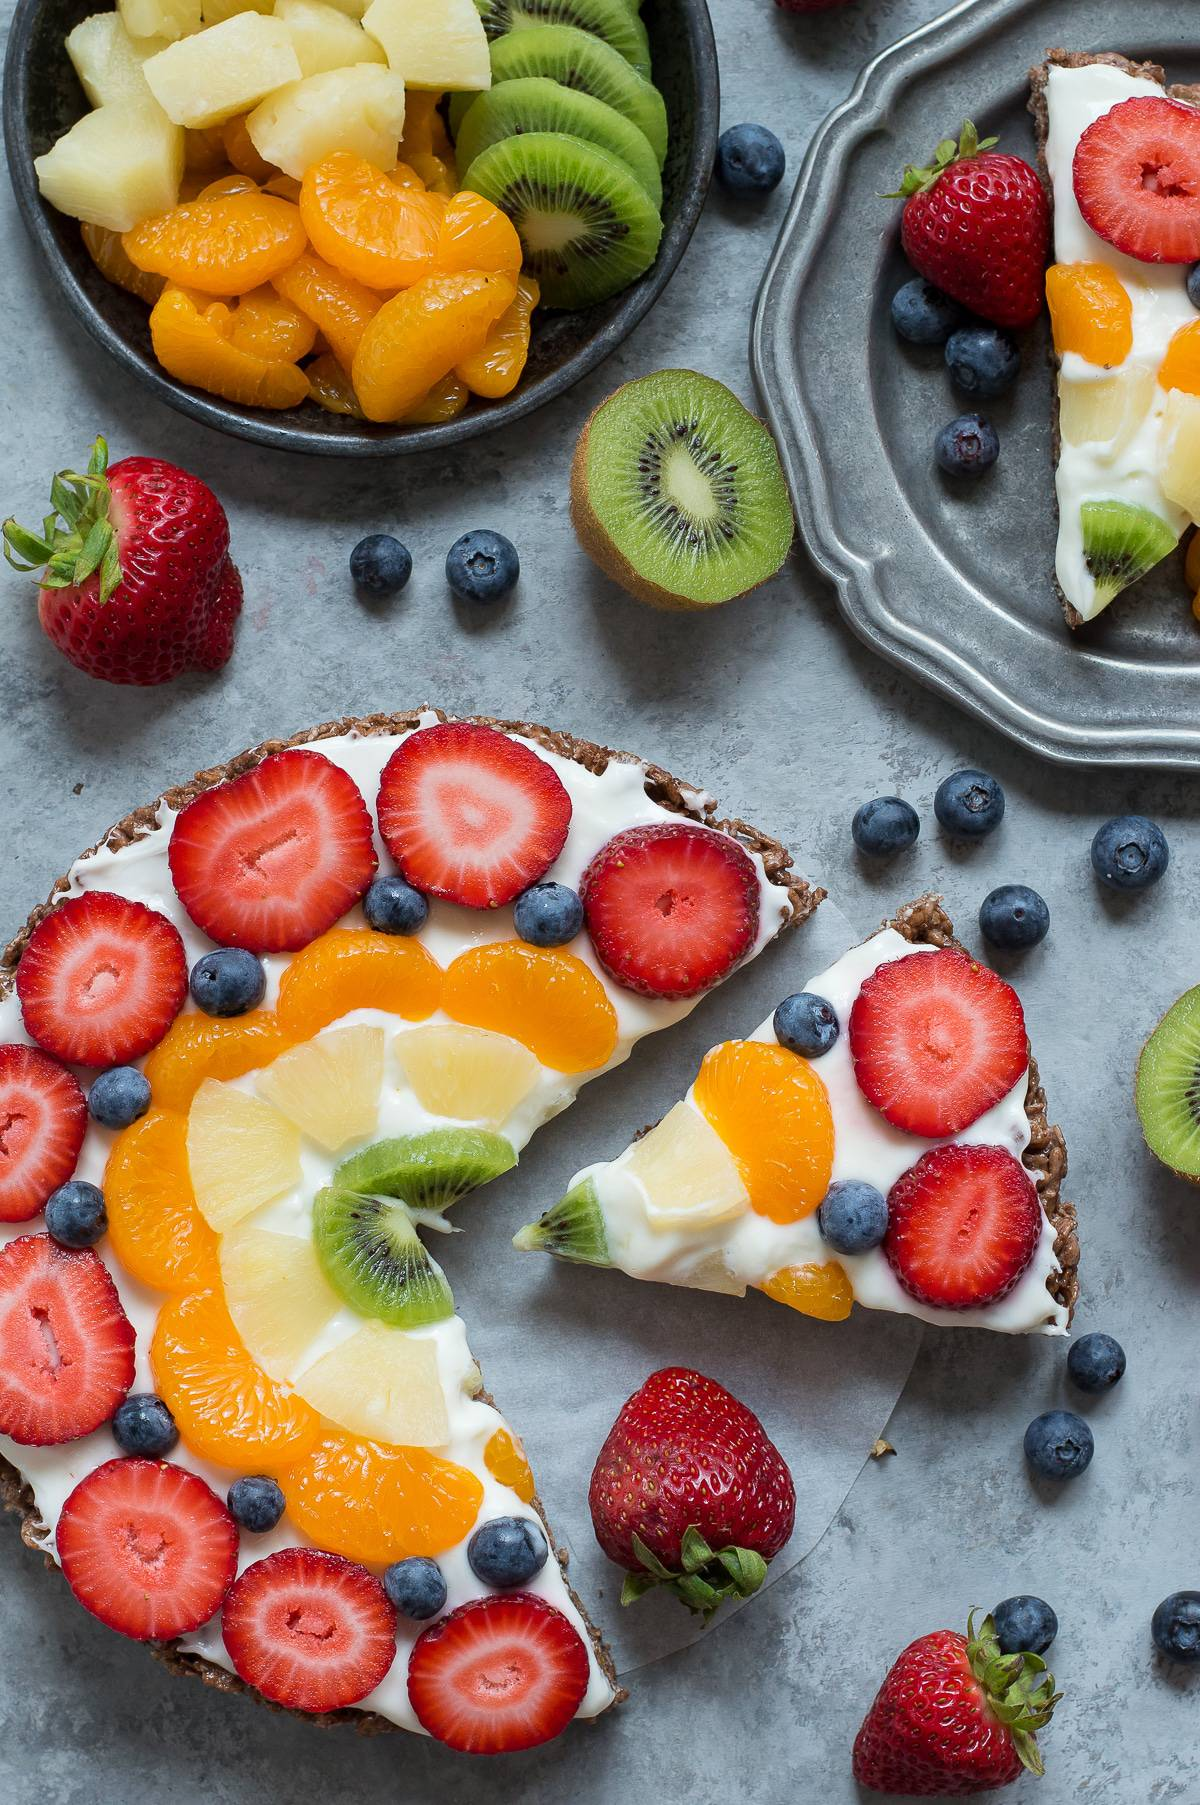 A fun twist on a fruit tart, featuring a chocolate crispy cereal treat crust and all your favorite fruit!